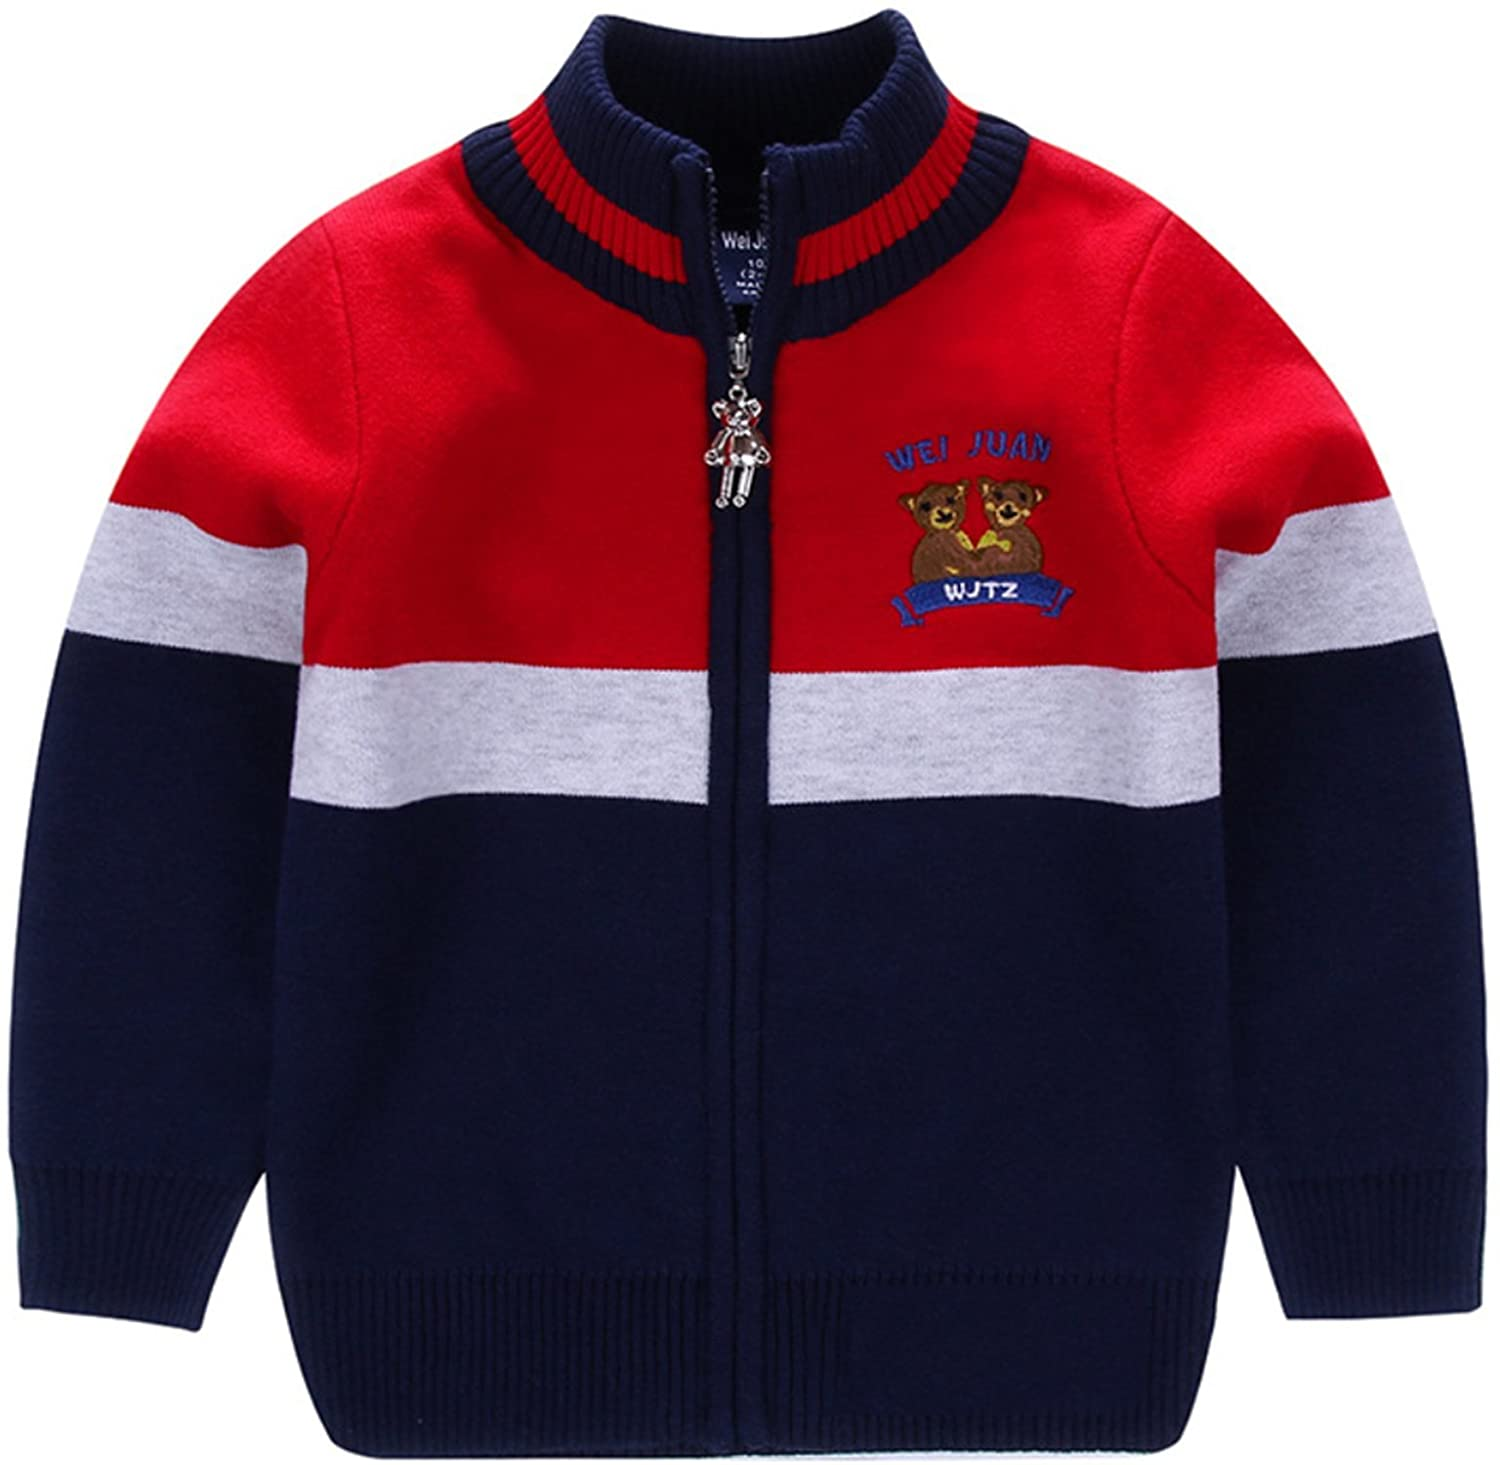 AUIE SAOSA Little Boys Spring and Autumn Stripe Knitted Cotton Coat zipper Cardigan Sweater